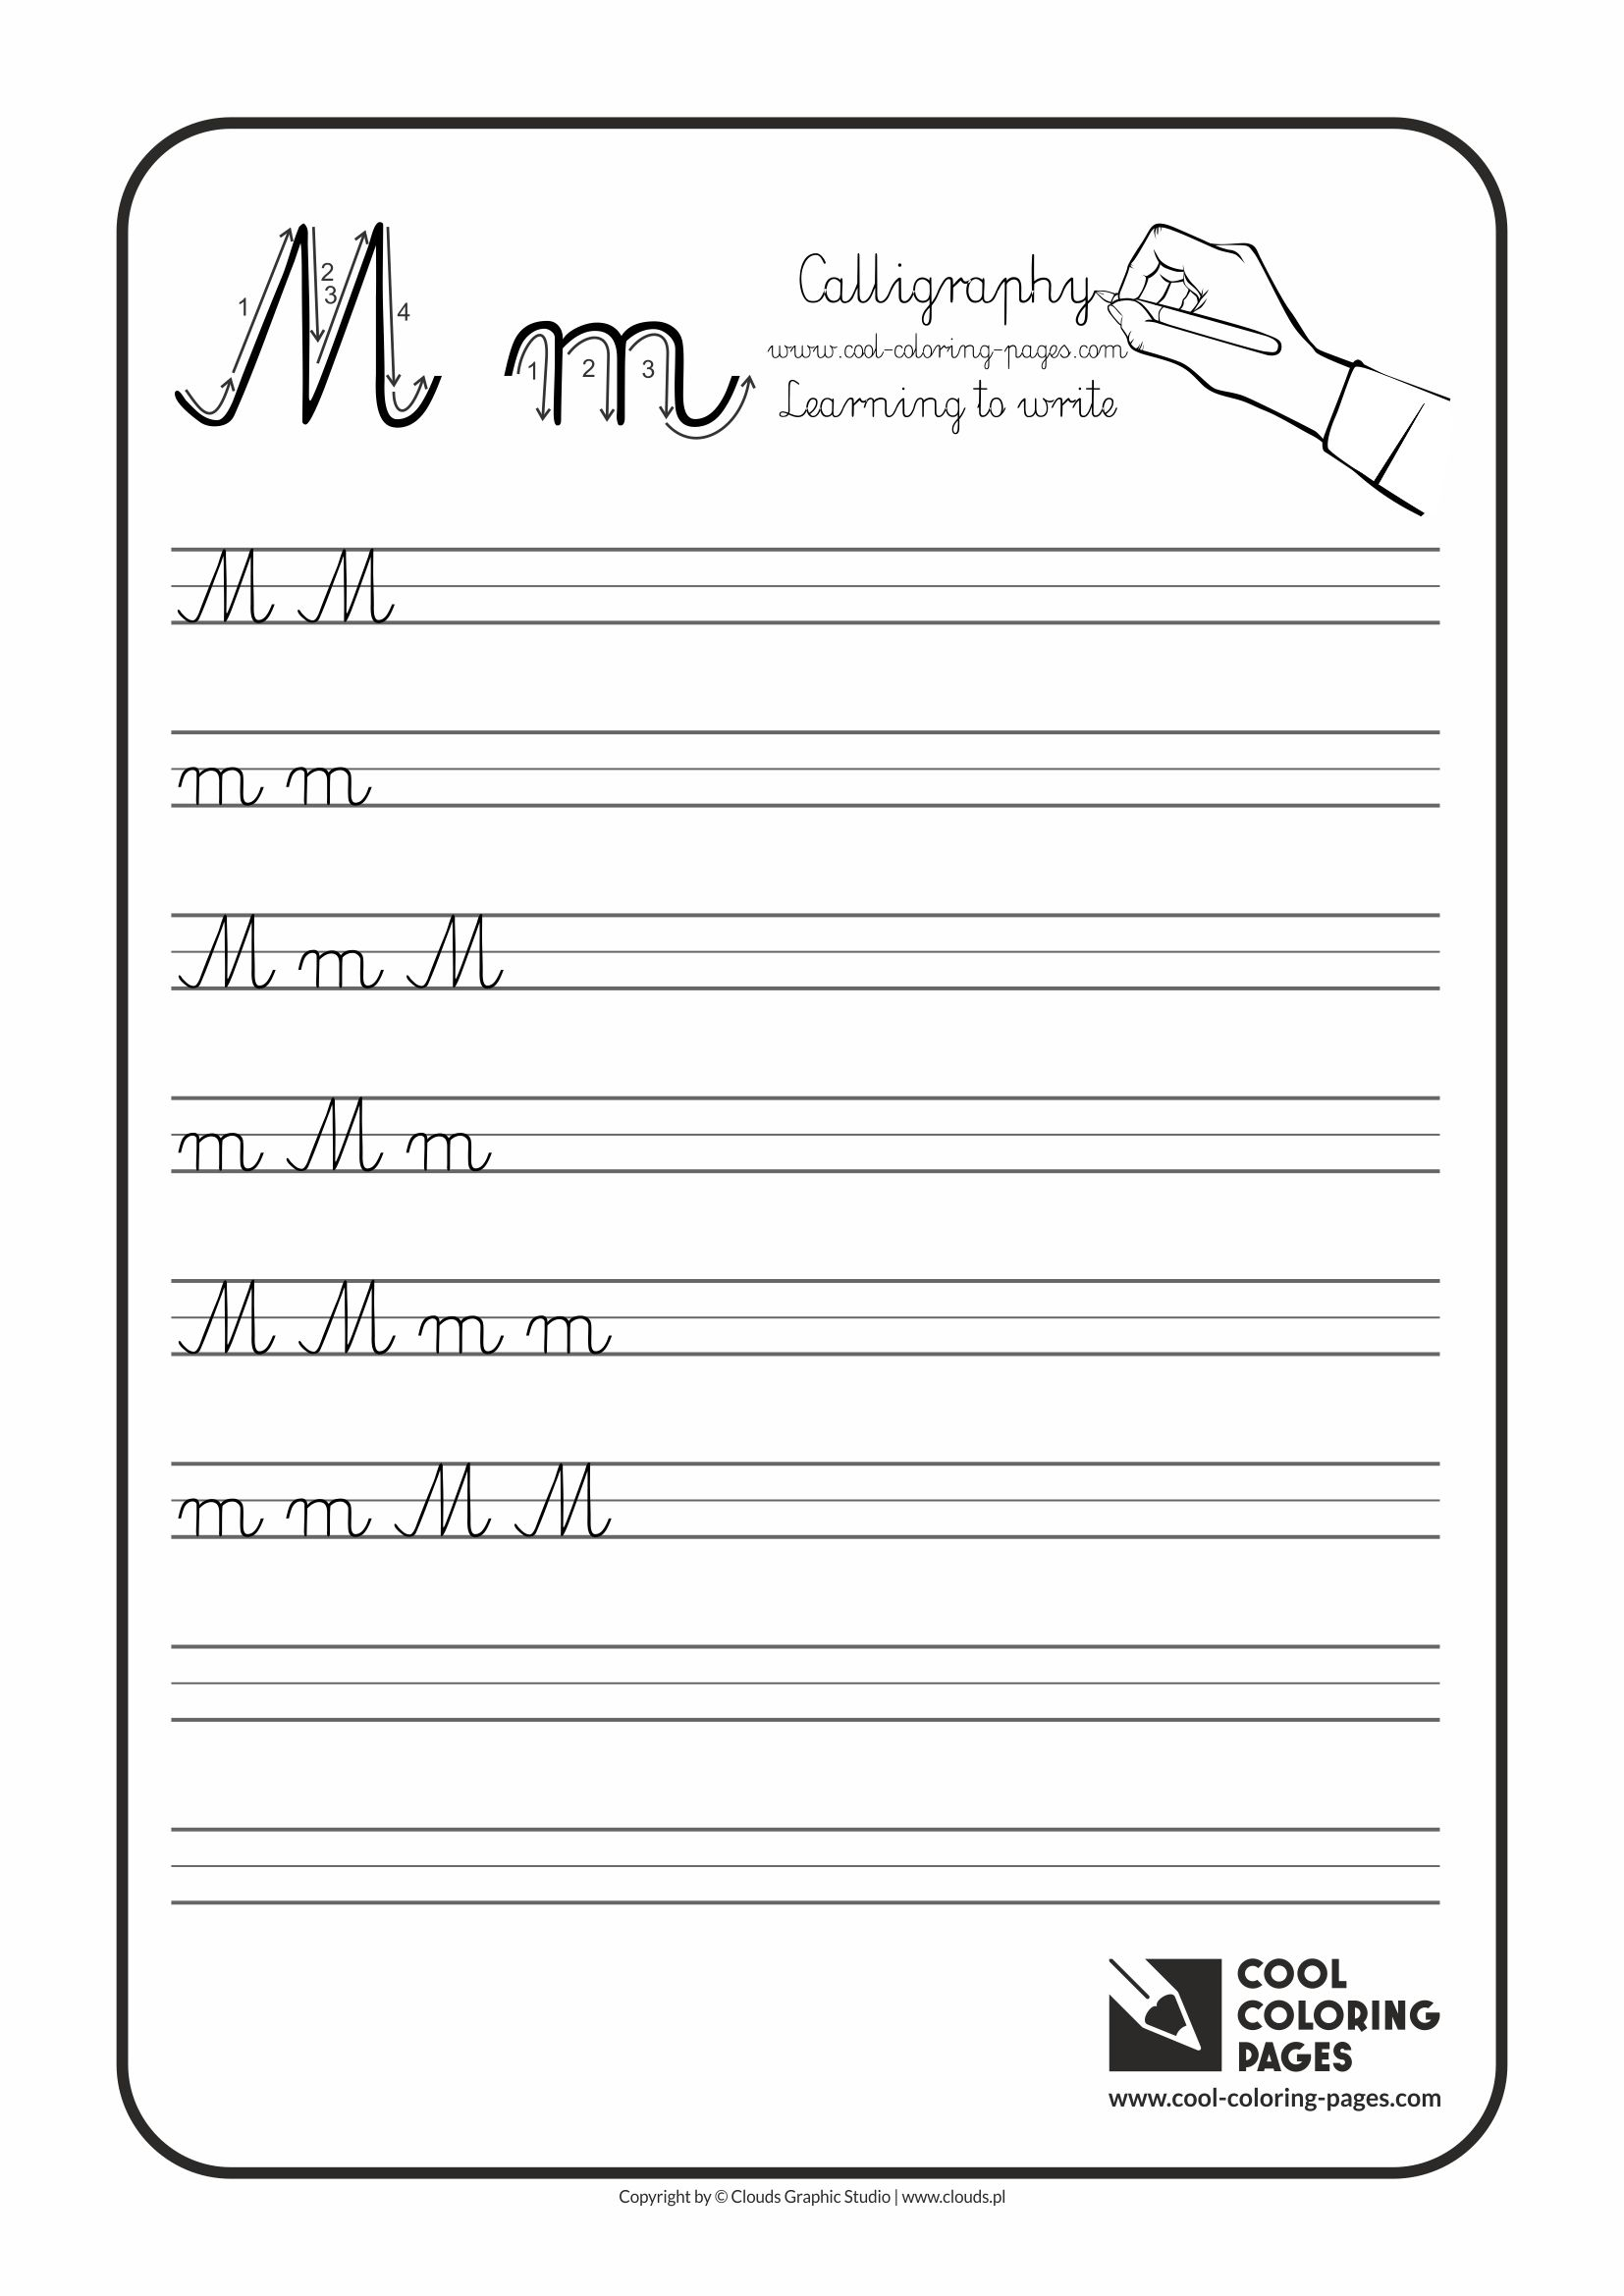 five senses coloring pages - calligraphy for kids letters handwriting